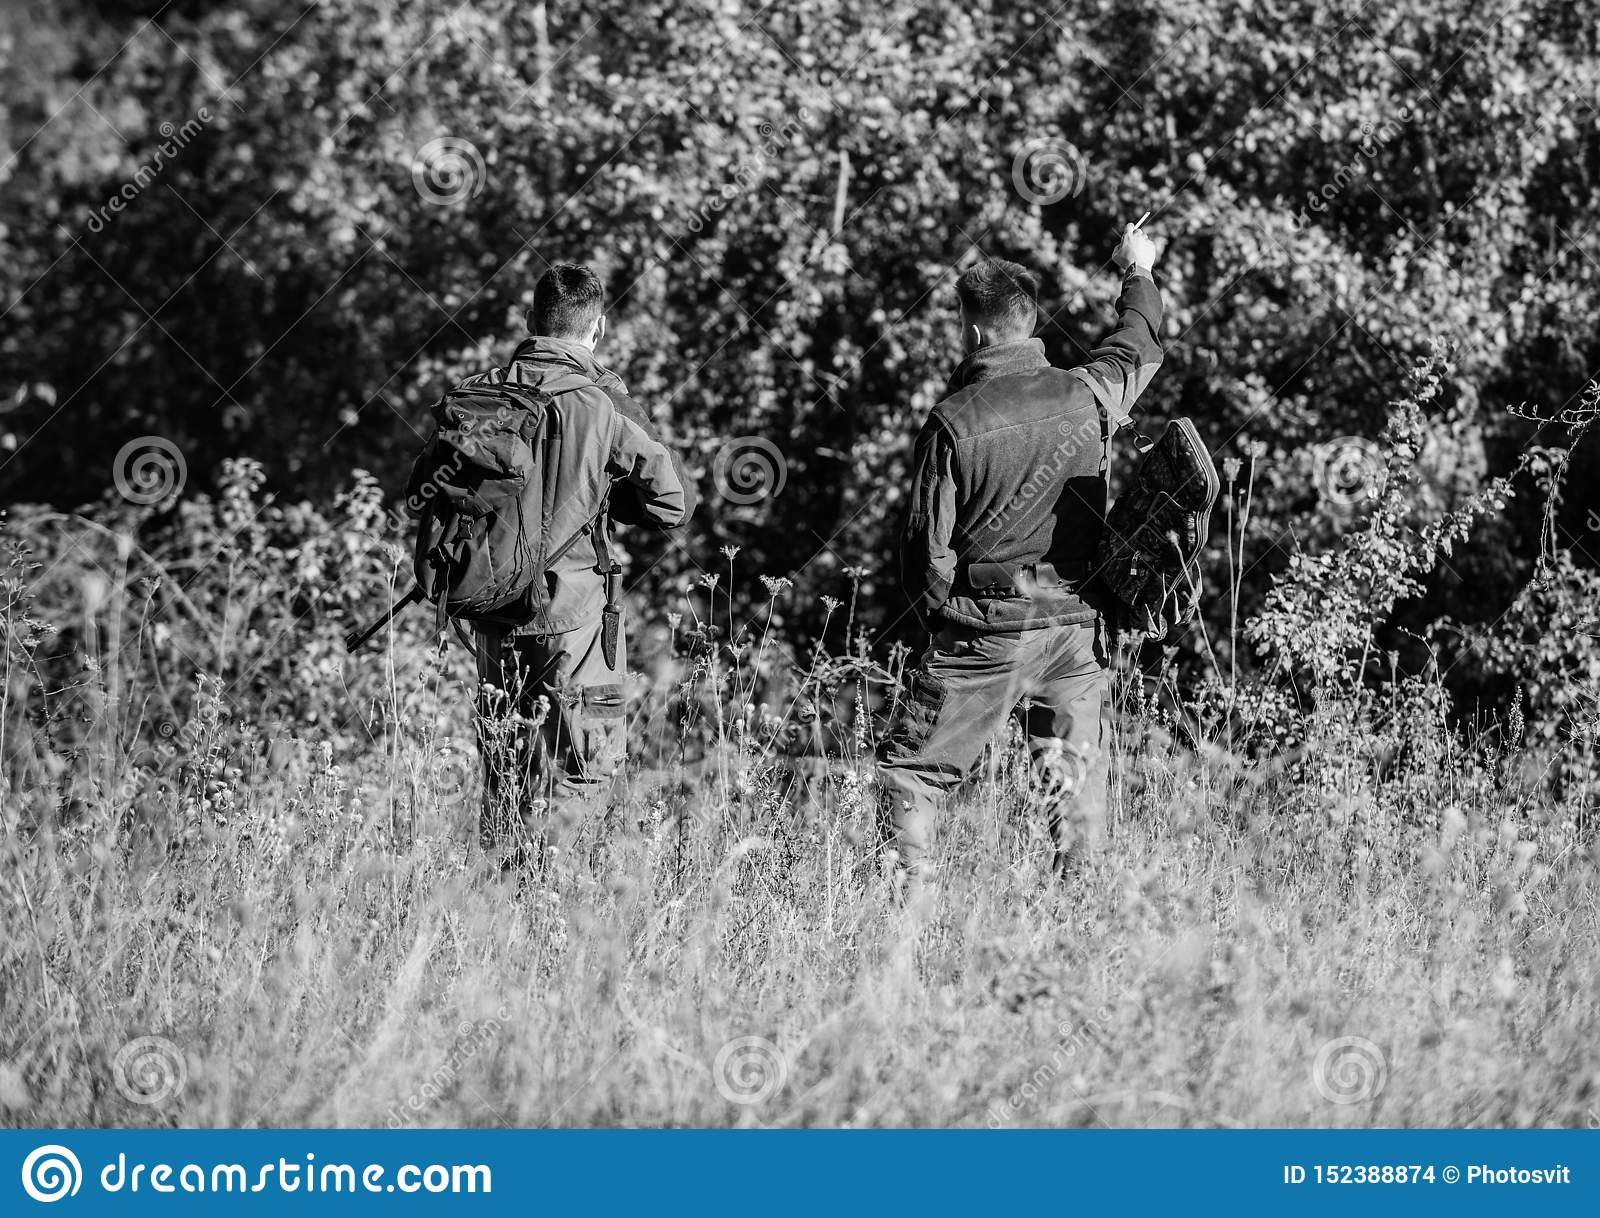 Hunters gamekeepers looking for animal or bird. Hunting with friends. Hunters friends enjoy leisure. Teamwork and